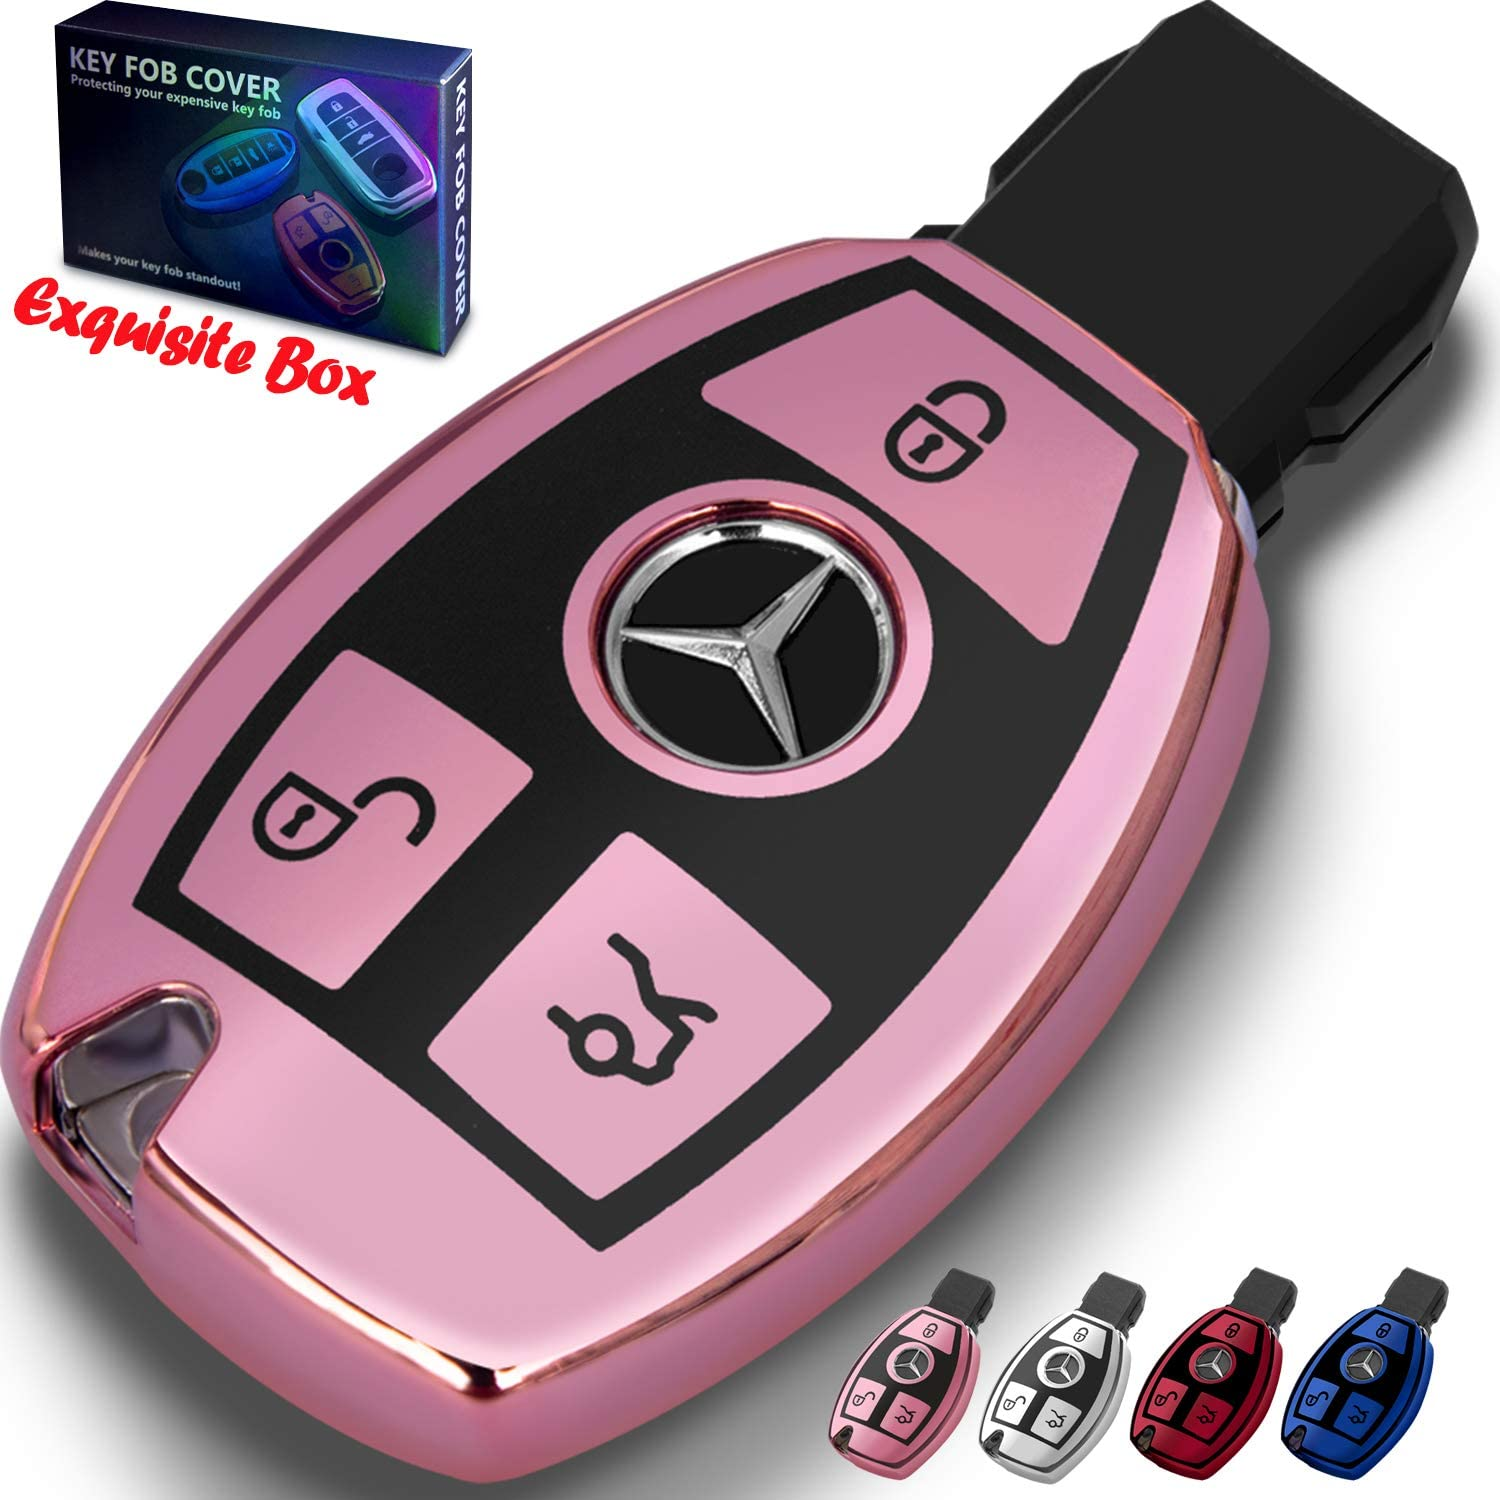 Premium Soft TPU Full Cover Protection for Mercedes Benz Smart Remote Key Fob Holder Key Fob Case for Mercedes Benz C E M S CLA CLS CLK GLC GLK G Class for Mercedes Benz Key Fob Cover Pink